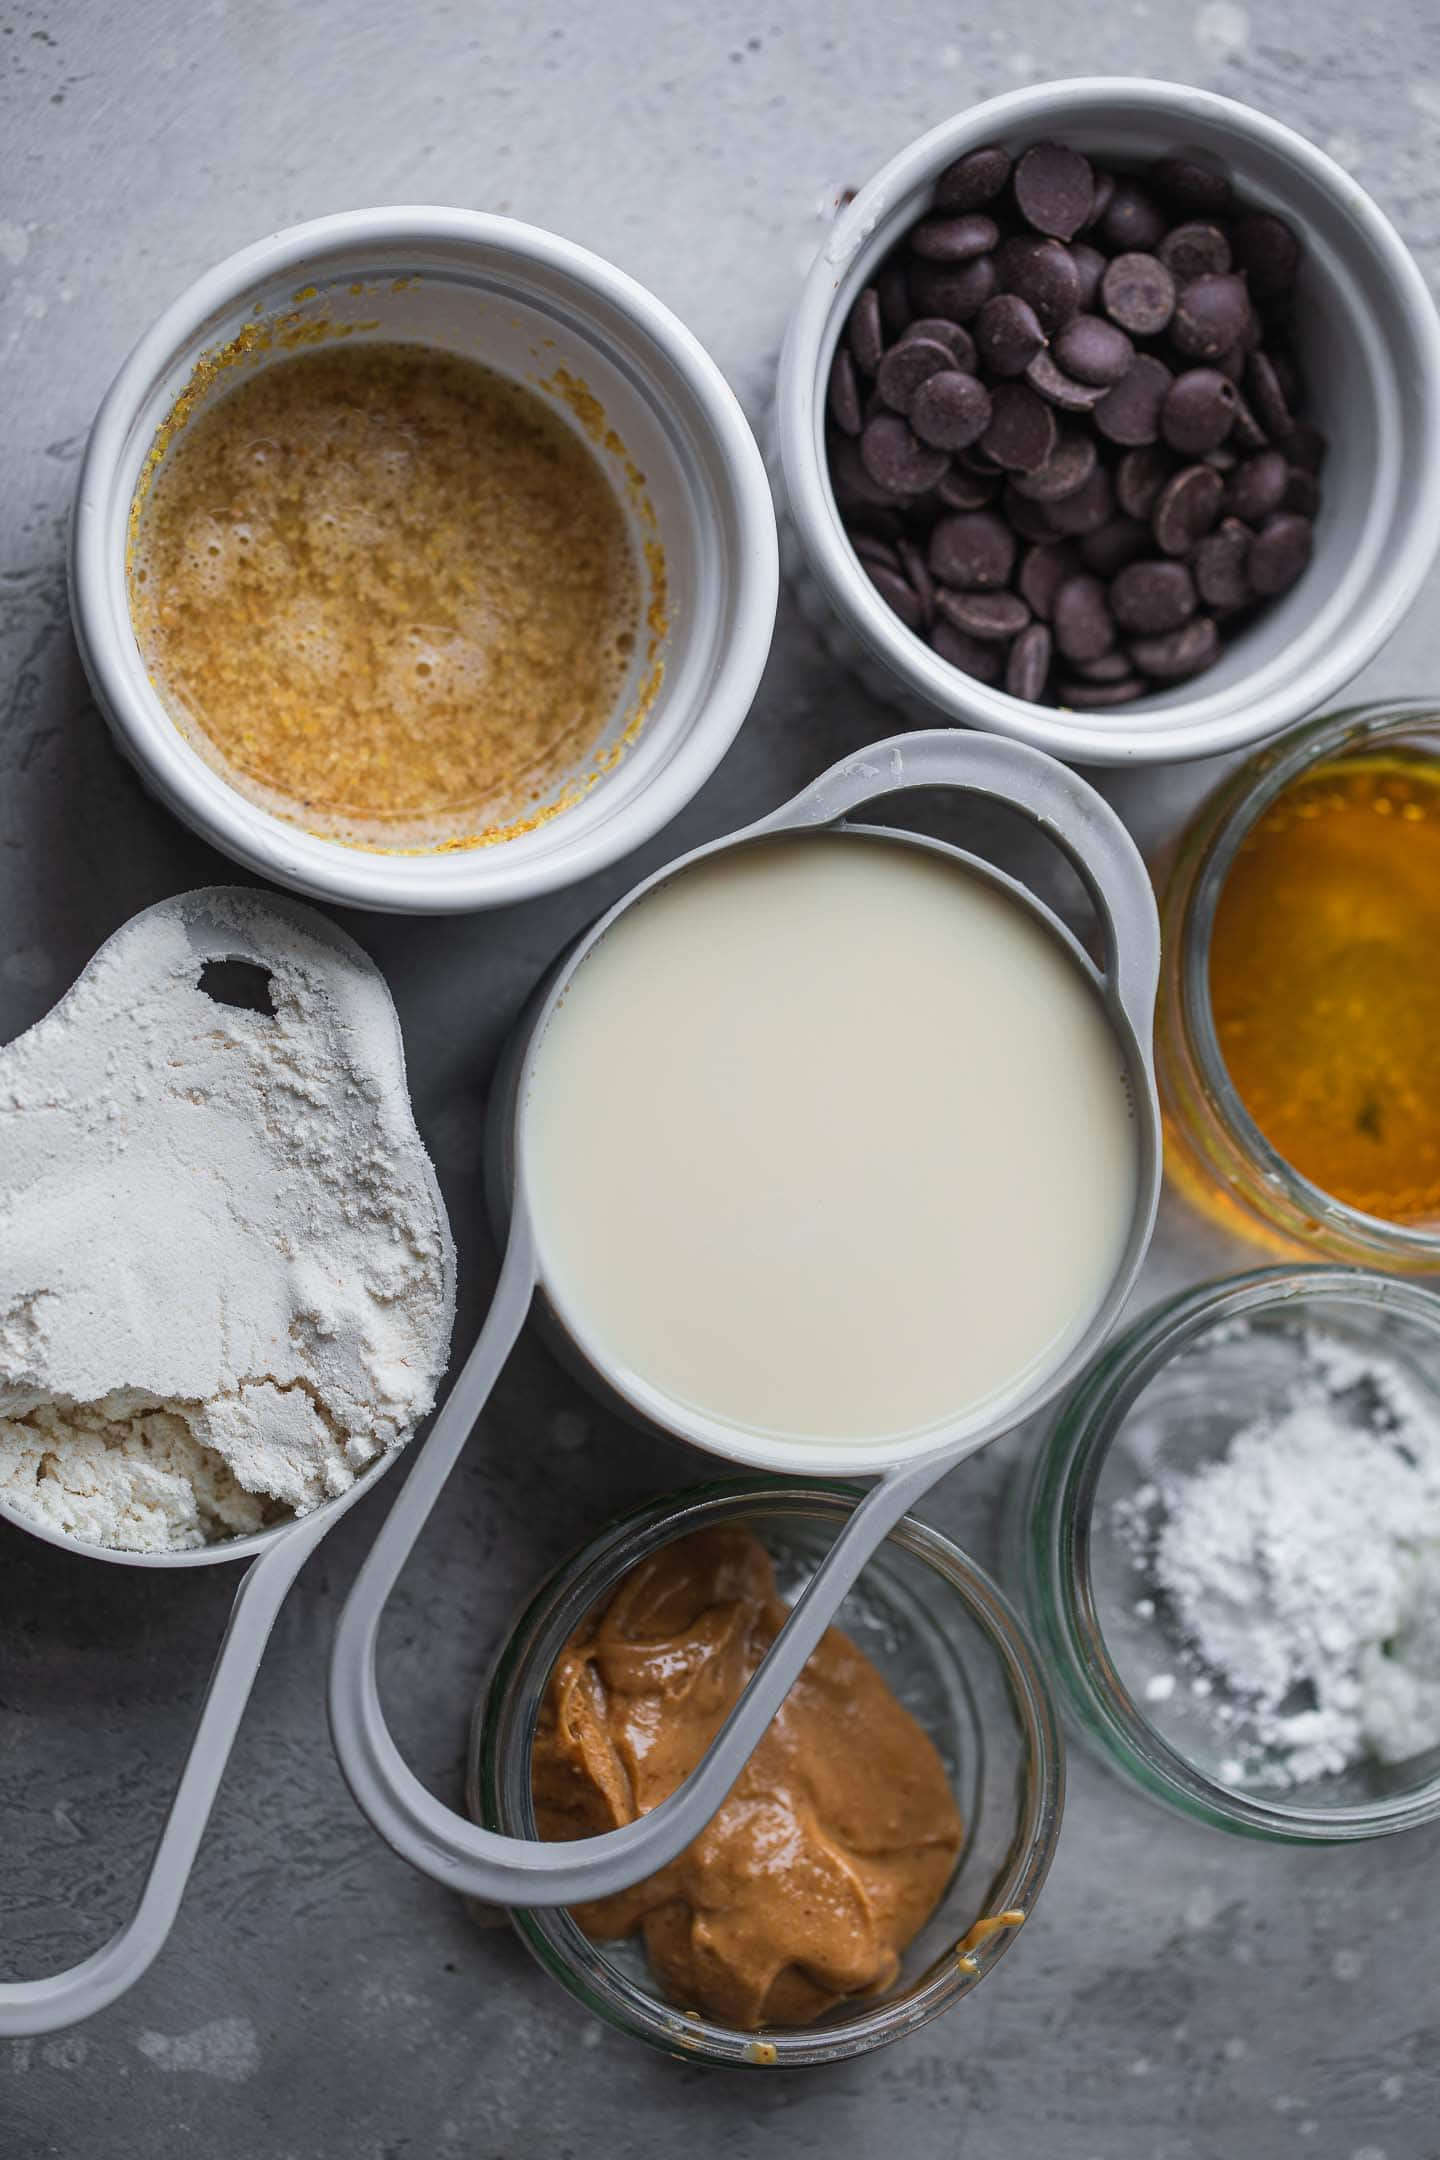 Ingredients for vegan coconut flour muffins